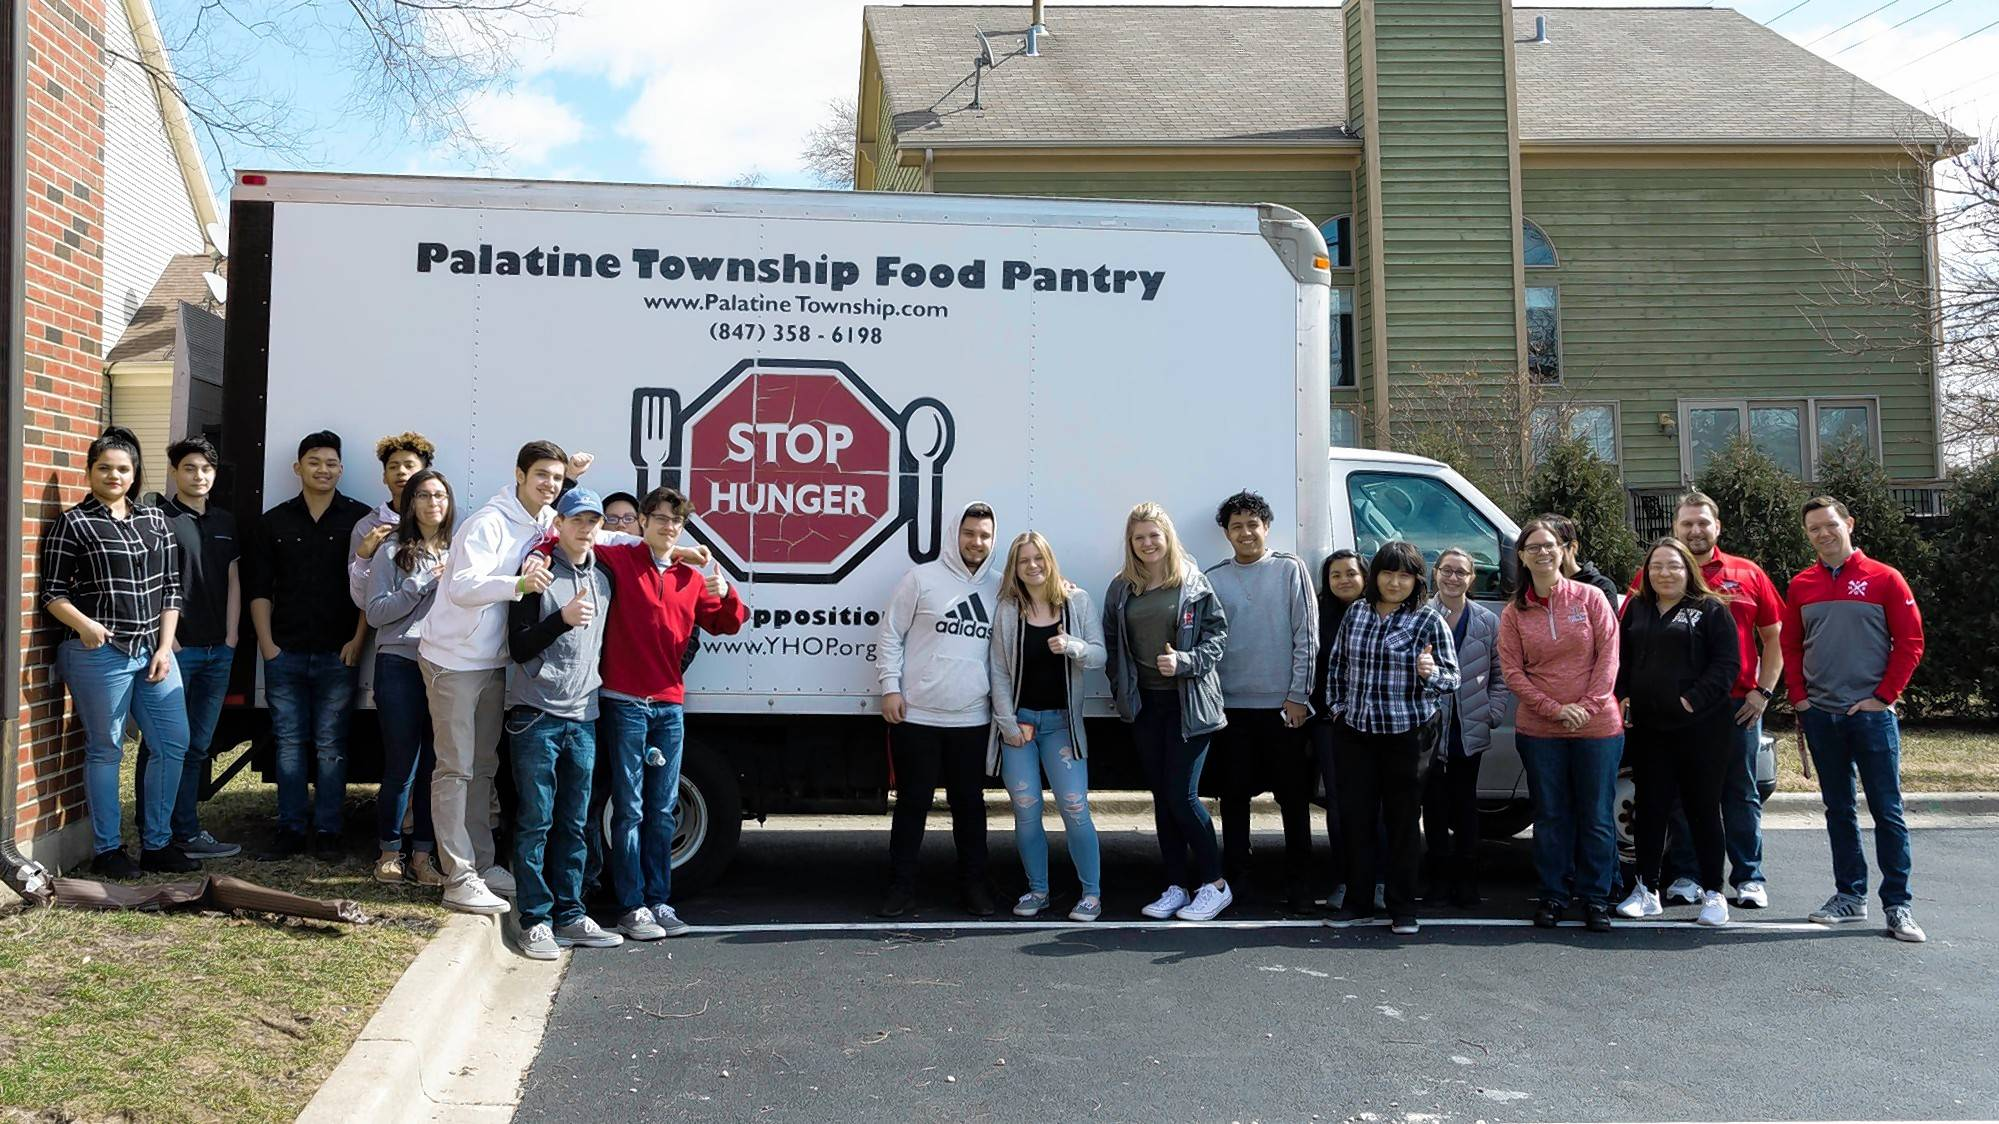 Students from Palatine High School's Chemistry of Foods class pose together with the truck for the Palatine Township Food Pantry.